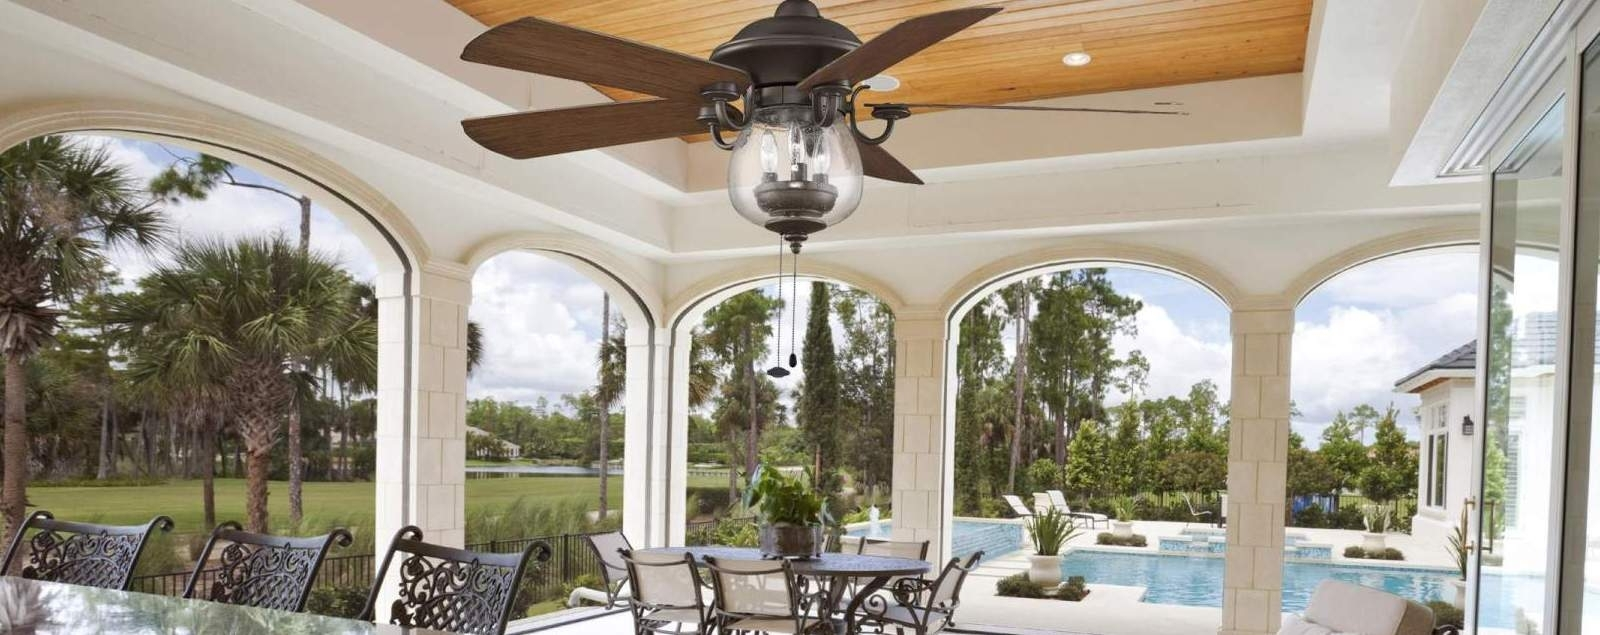 Outdoor Ceiling Fans With Lights Damp Rated Pertaining To Trendy Outdoor Ceiling Fans – Shop Wet, Dry, And Damp Rated Outdoor Fans (View 10 of 20)